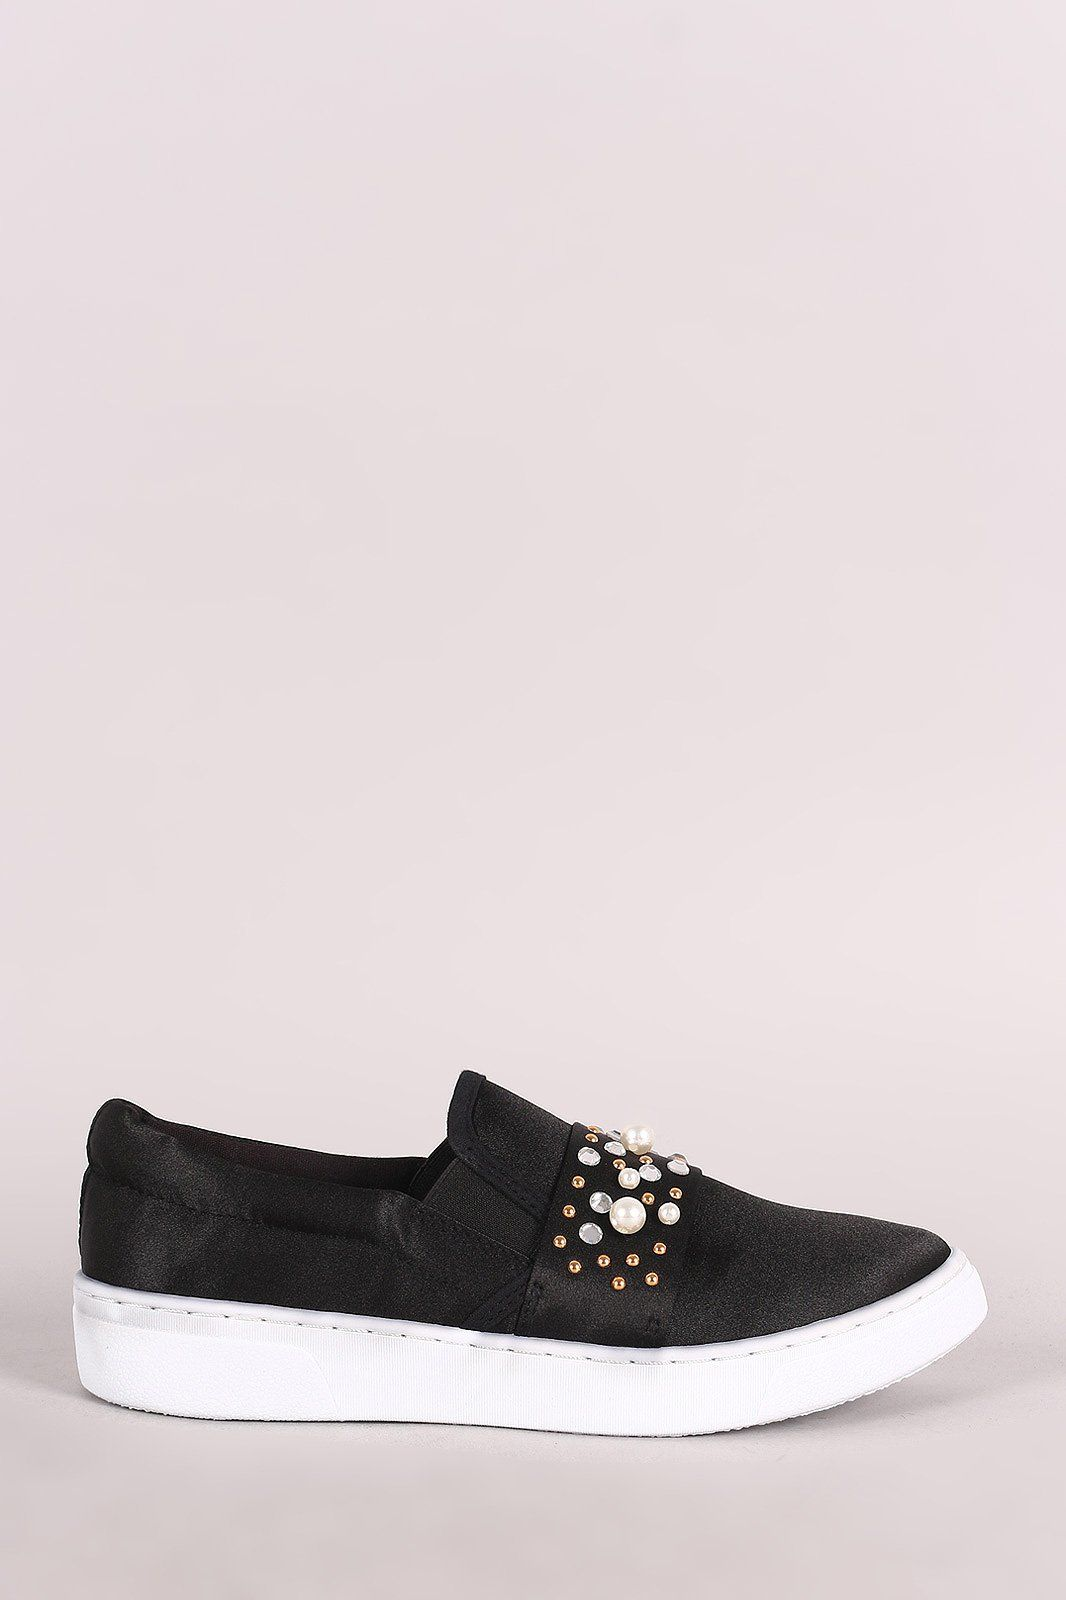 Slip-On Sneaker For Women By Qupid  Shop Women's Fashion Lovely Stylish Smooth